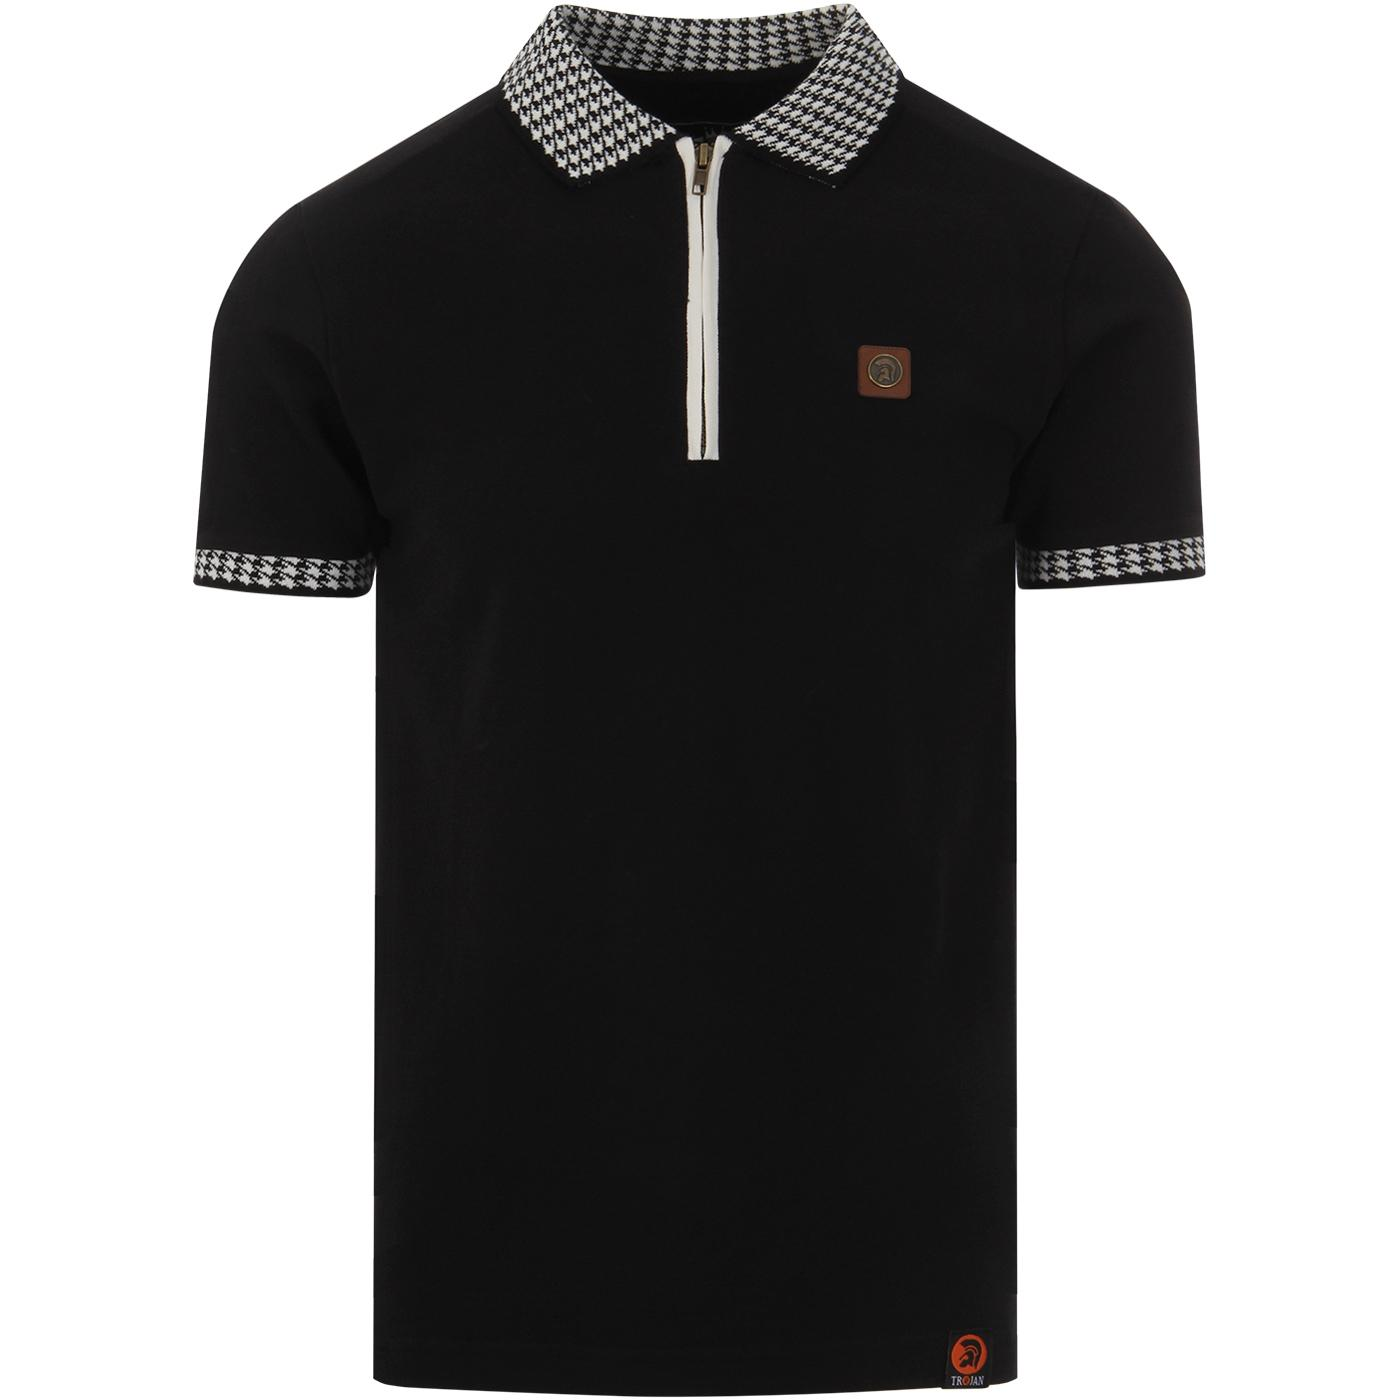 TROJAN RECORDS Retro Mod Zip Neck Pique Polo B